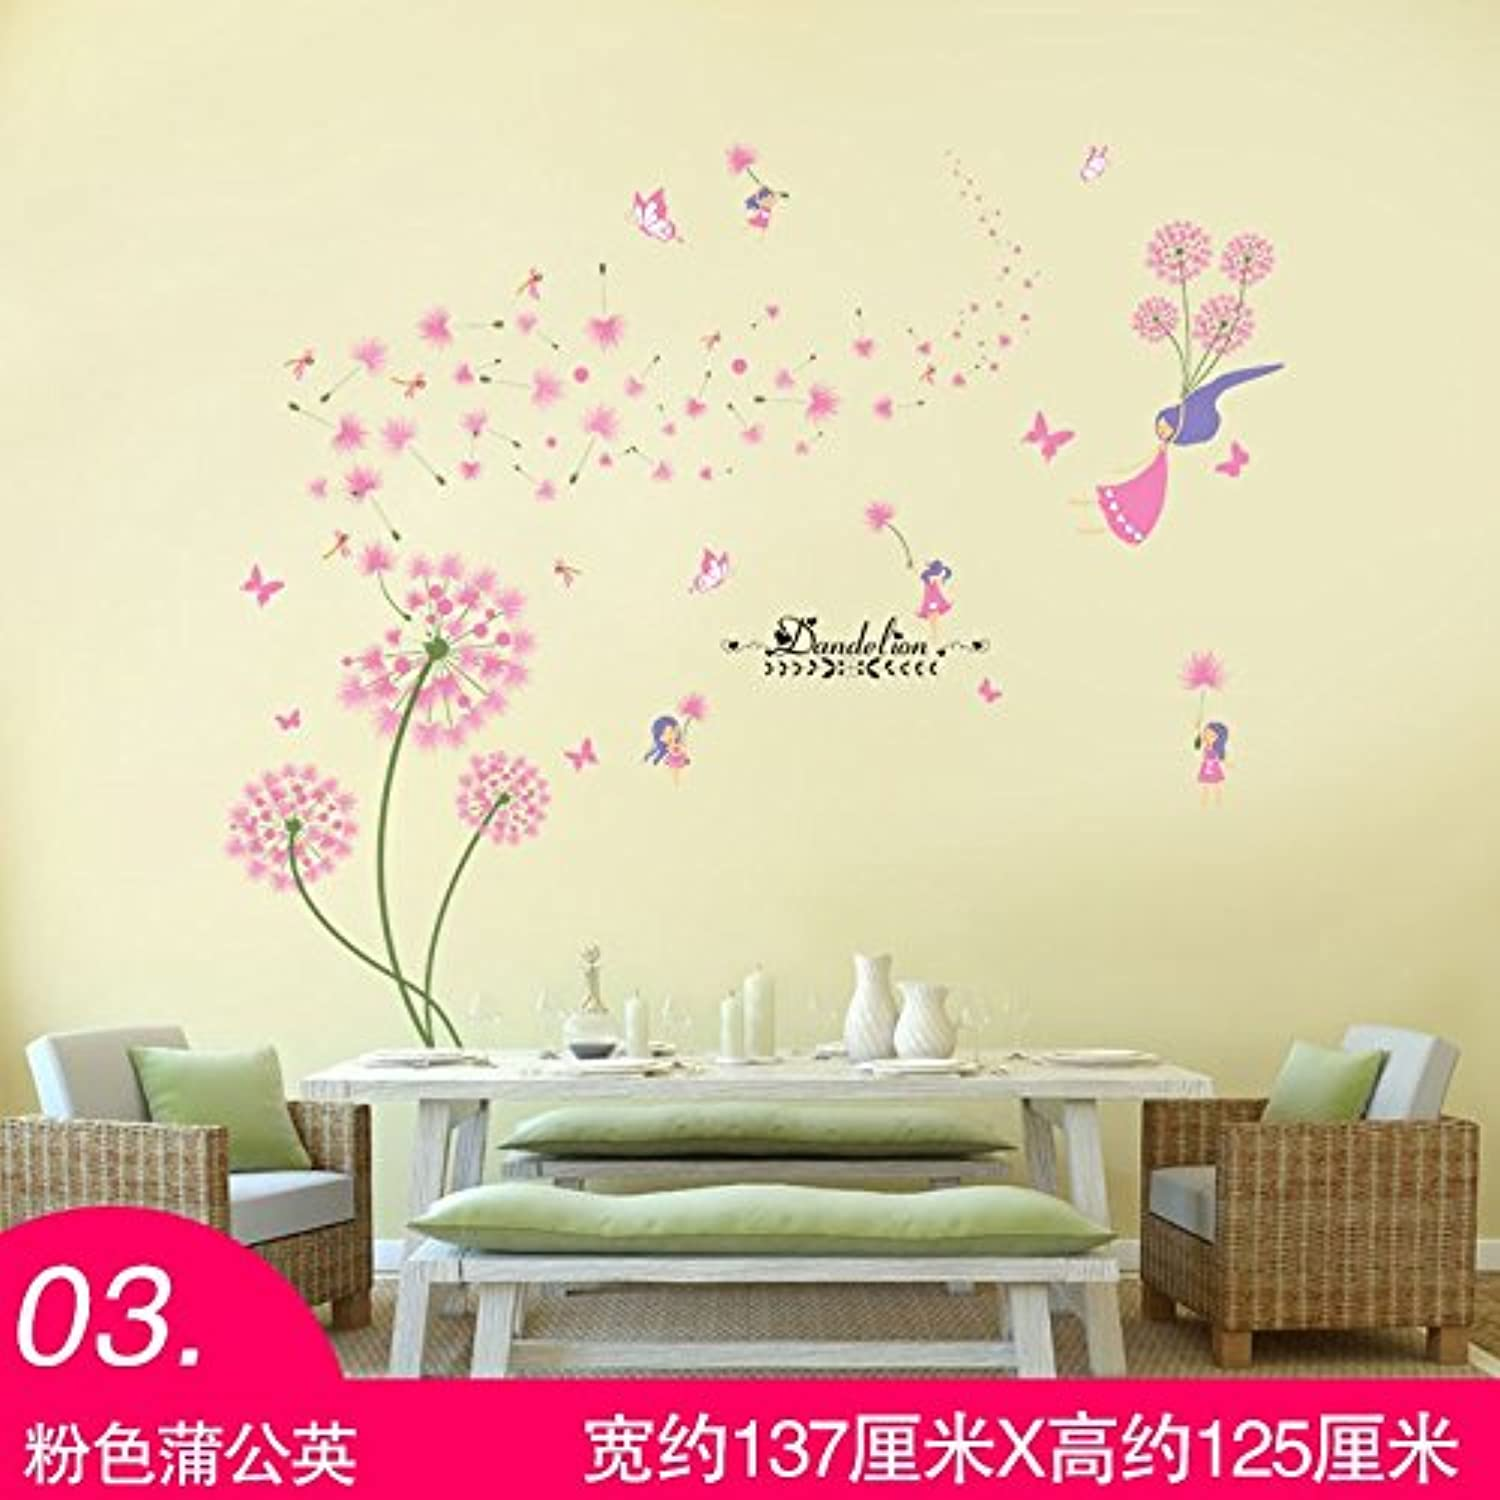 Znzbzt Home Landscape Wall Art Bedroom Decor, Wall Art 3D Posters,03 Pink Dandelion, King